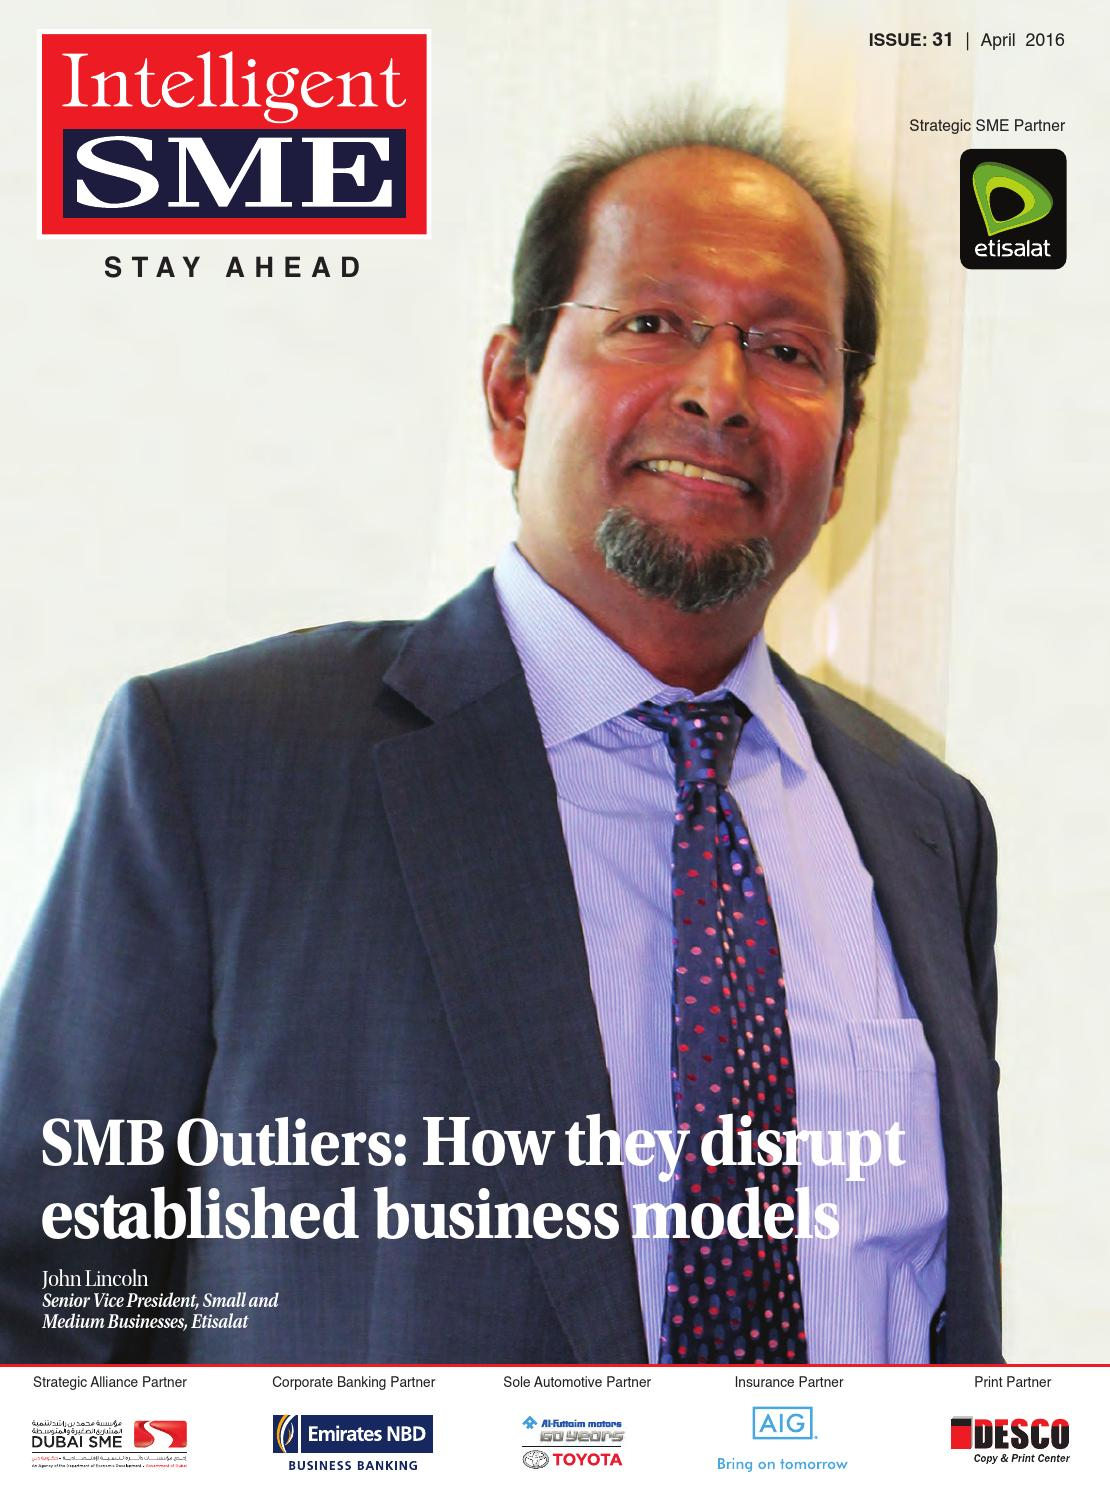 Intelligent SME April 2016 - Issue 31 by SPI Publishing - issuu